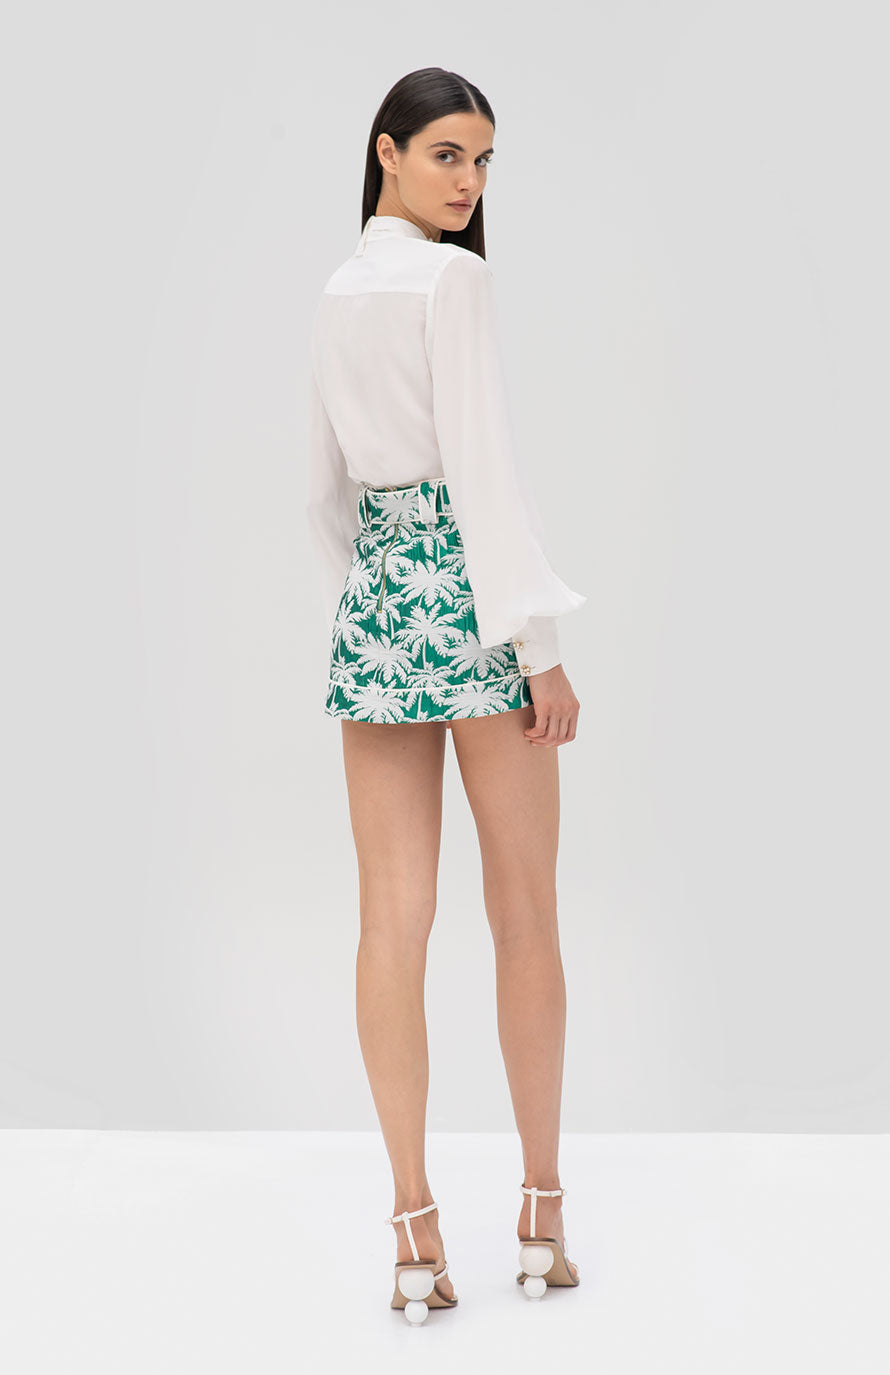 Alexis Aruca Top White and Lodi Skirt Green Palm - Rear View